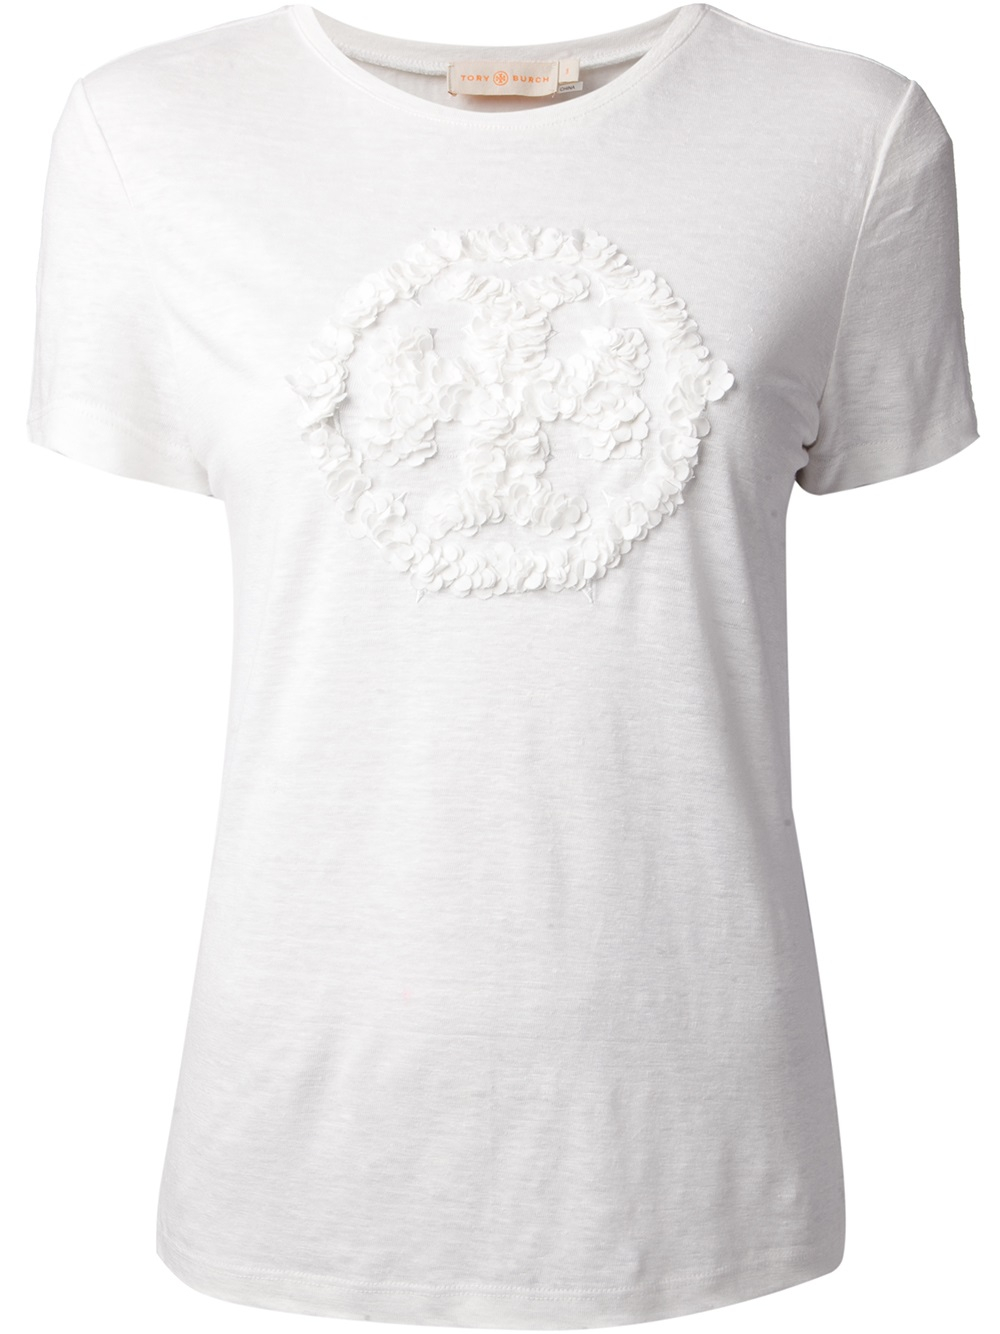 tory burch textured logo t shirt in white lyst